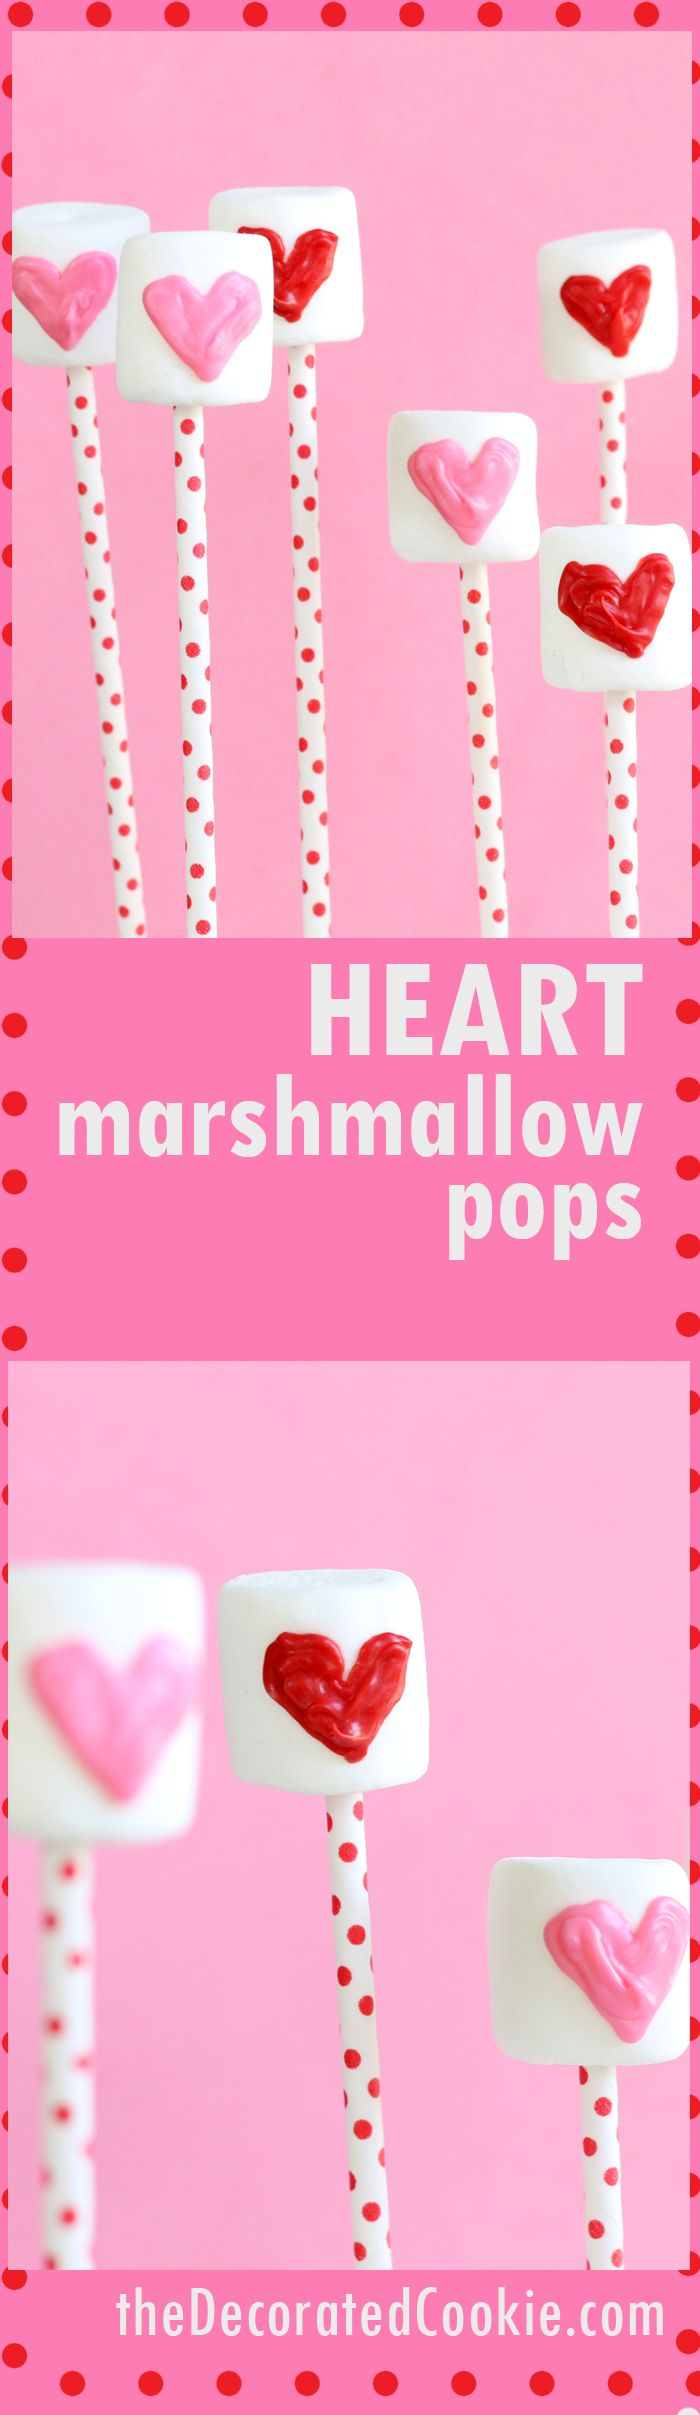 heart marshmallow pops for Valentine's Day